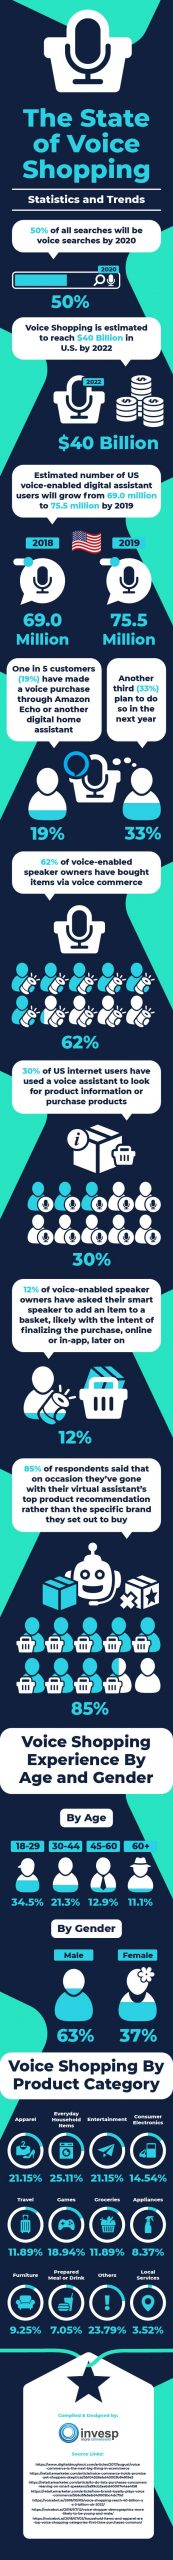 voice shopping scaled